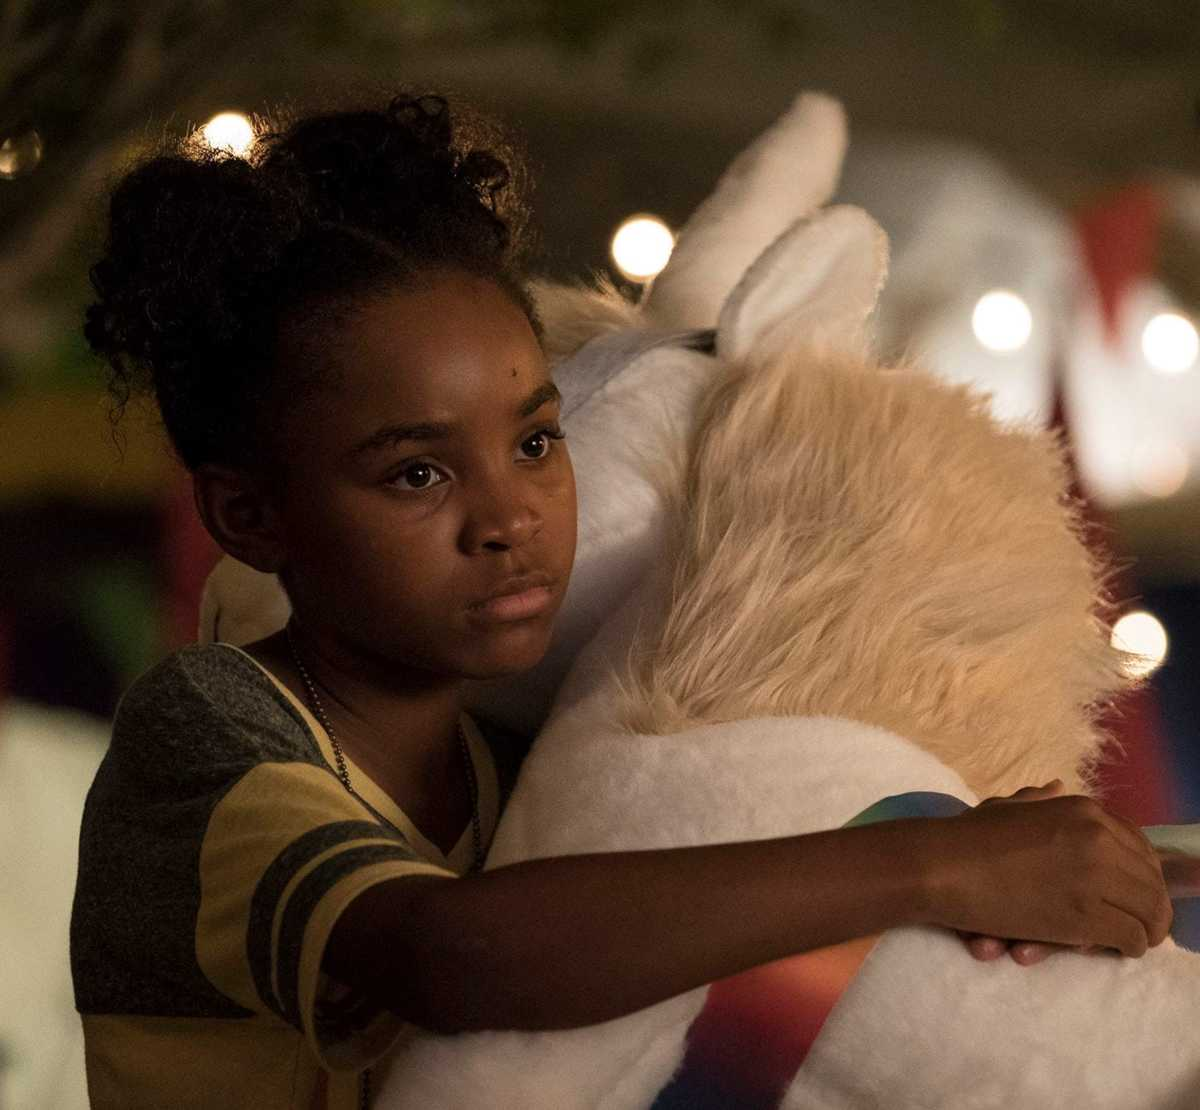 'The Passage': Another viral vampire story, with an appealing child who gives it life